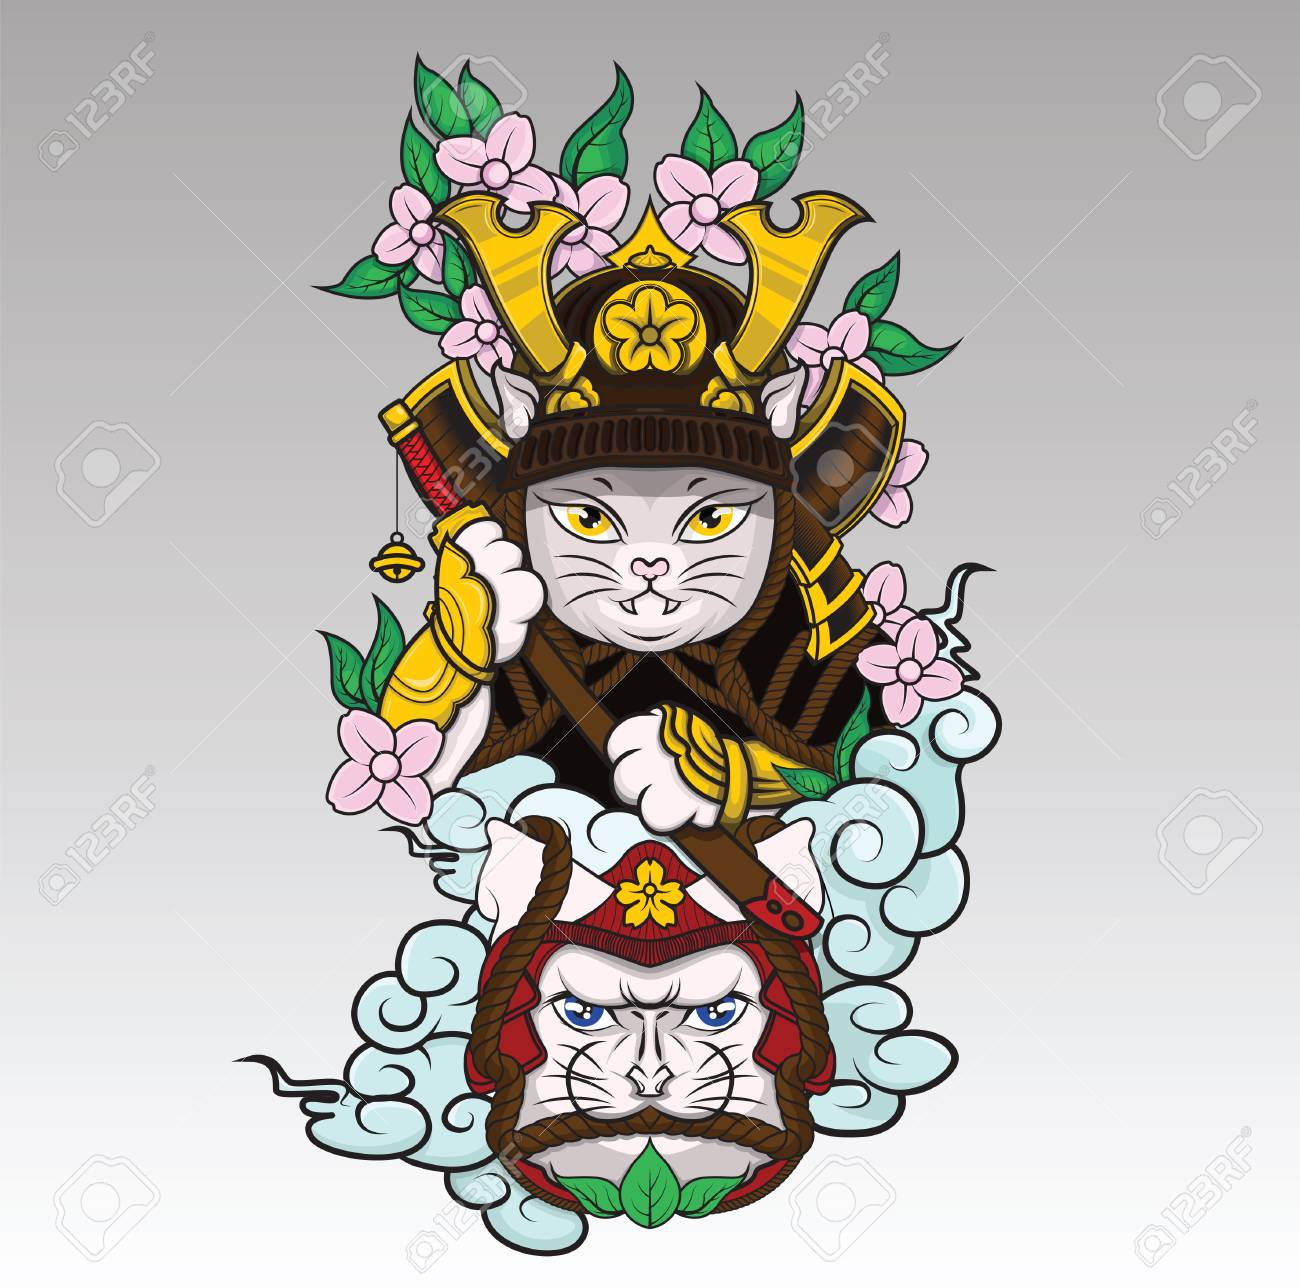 Cat Samurai On Colud And Sakura Blossom Japanese Tattoo Style Royalty Free Cliparts Vectors And Stock Illustration Image 126236741